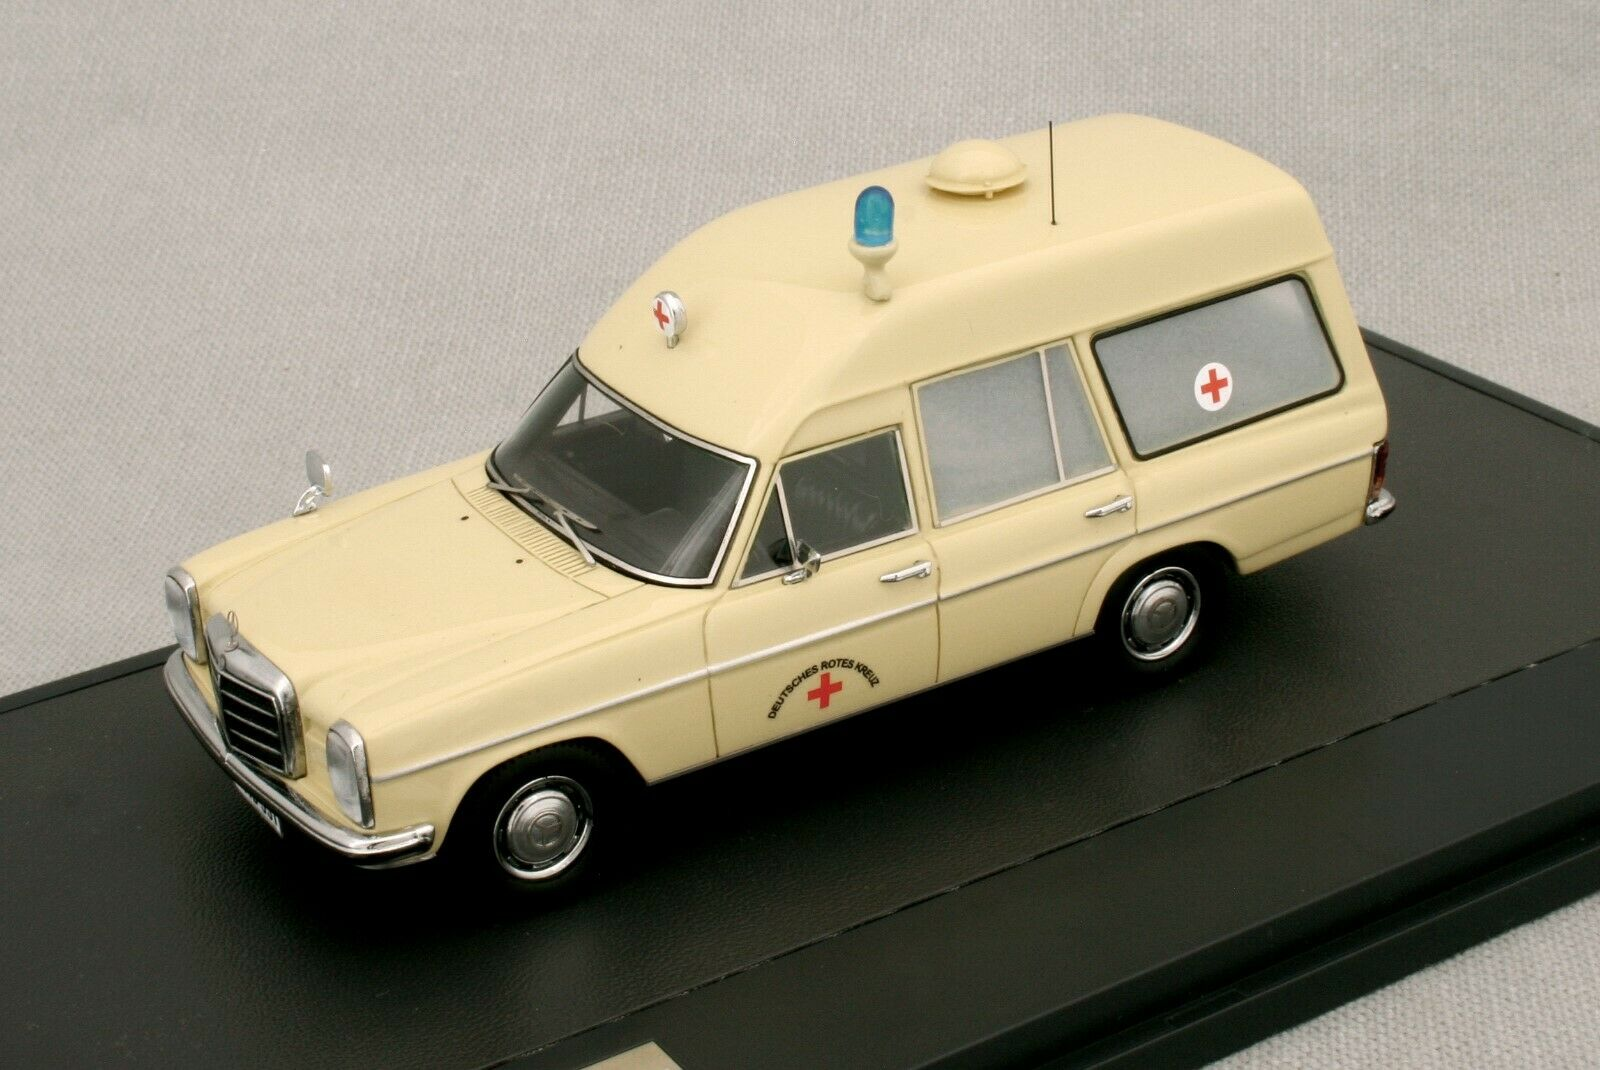 MERCEDES BENZ BINZ W114 EUROP AMBULANCE - 1969 - MATRIX MX 11302-031 - 1/43